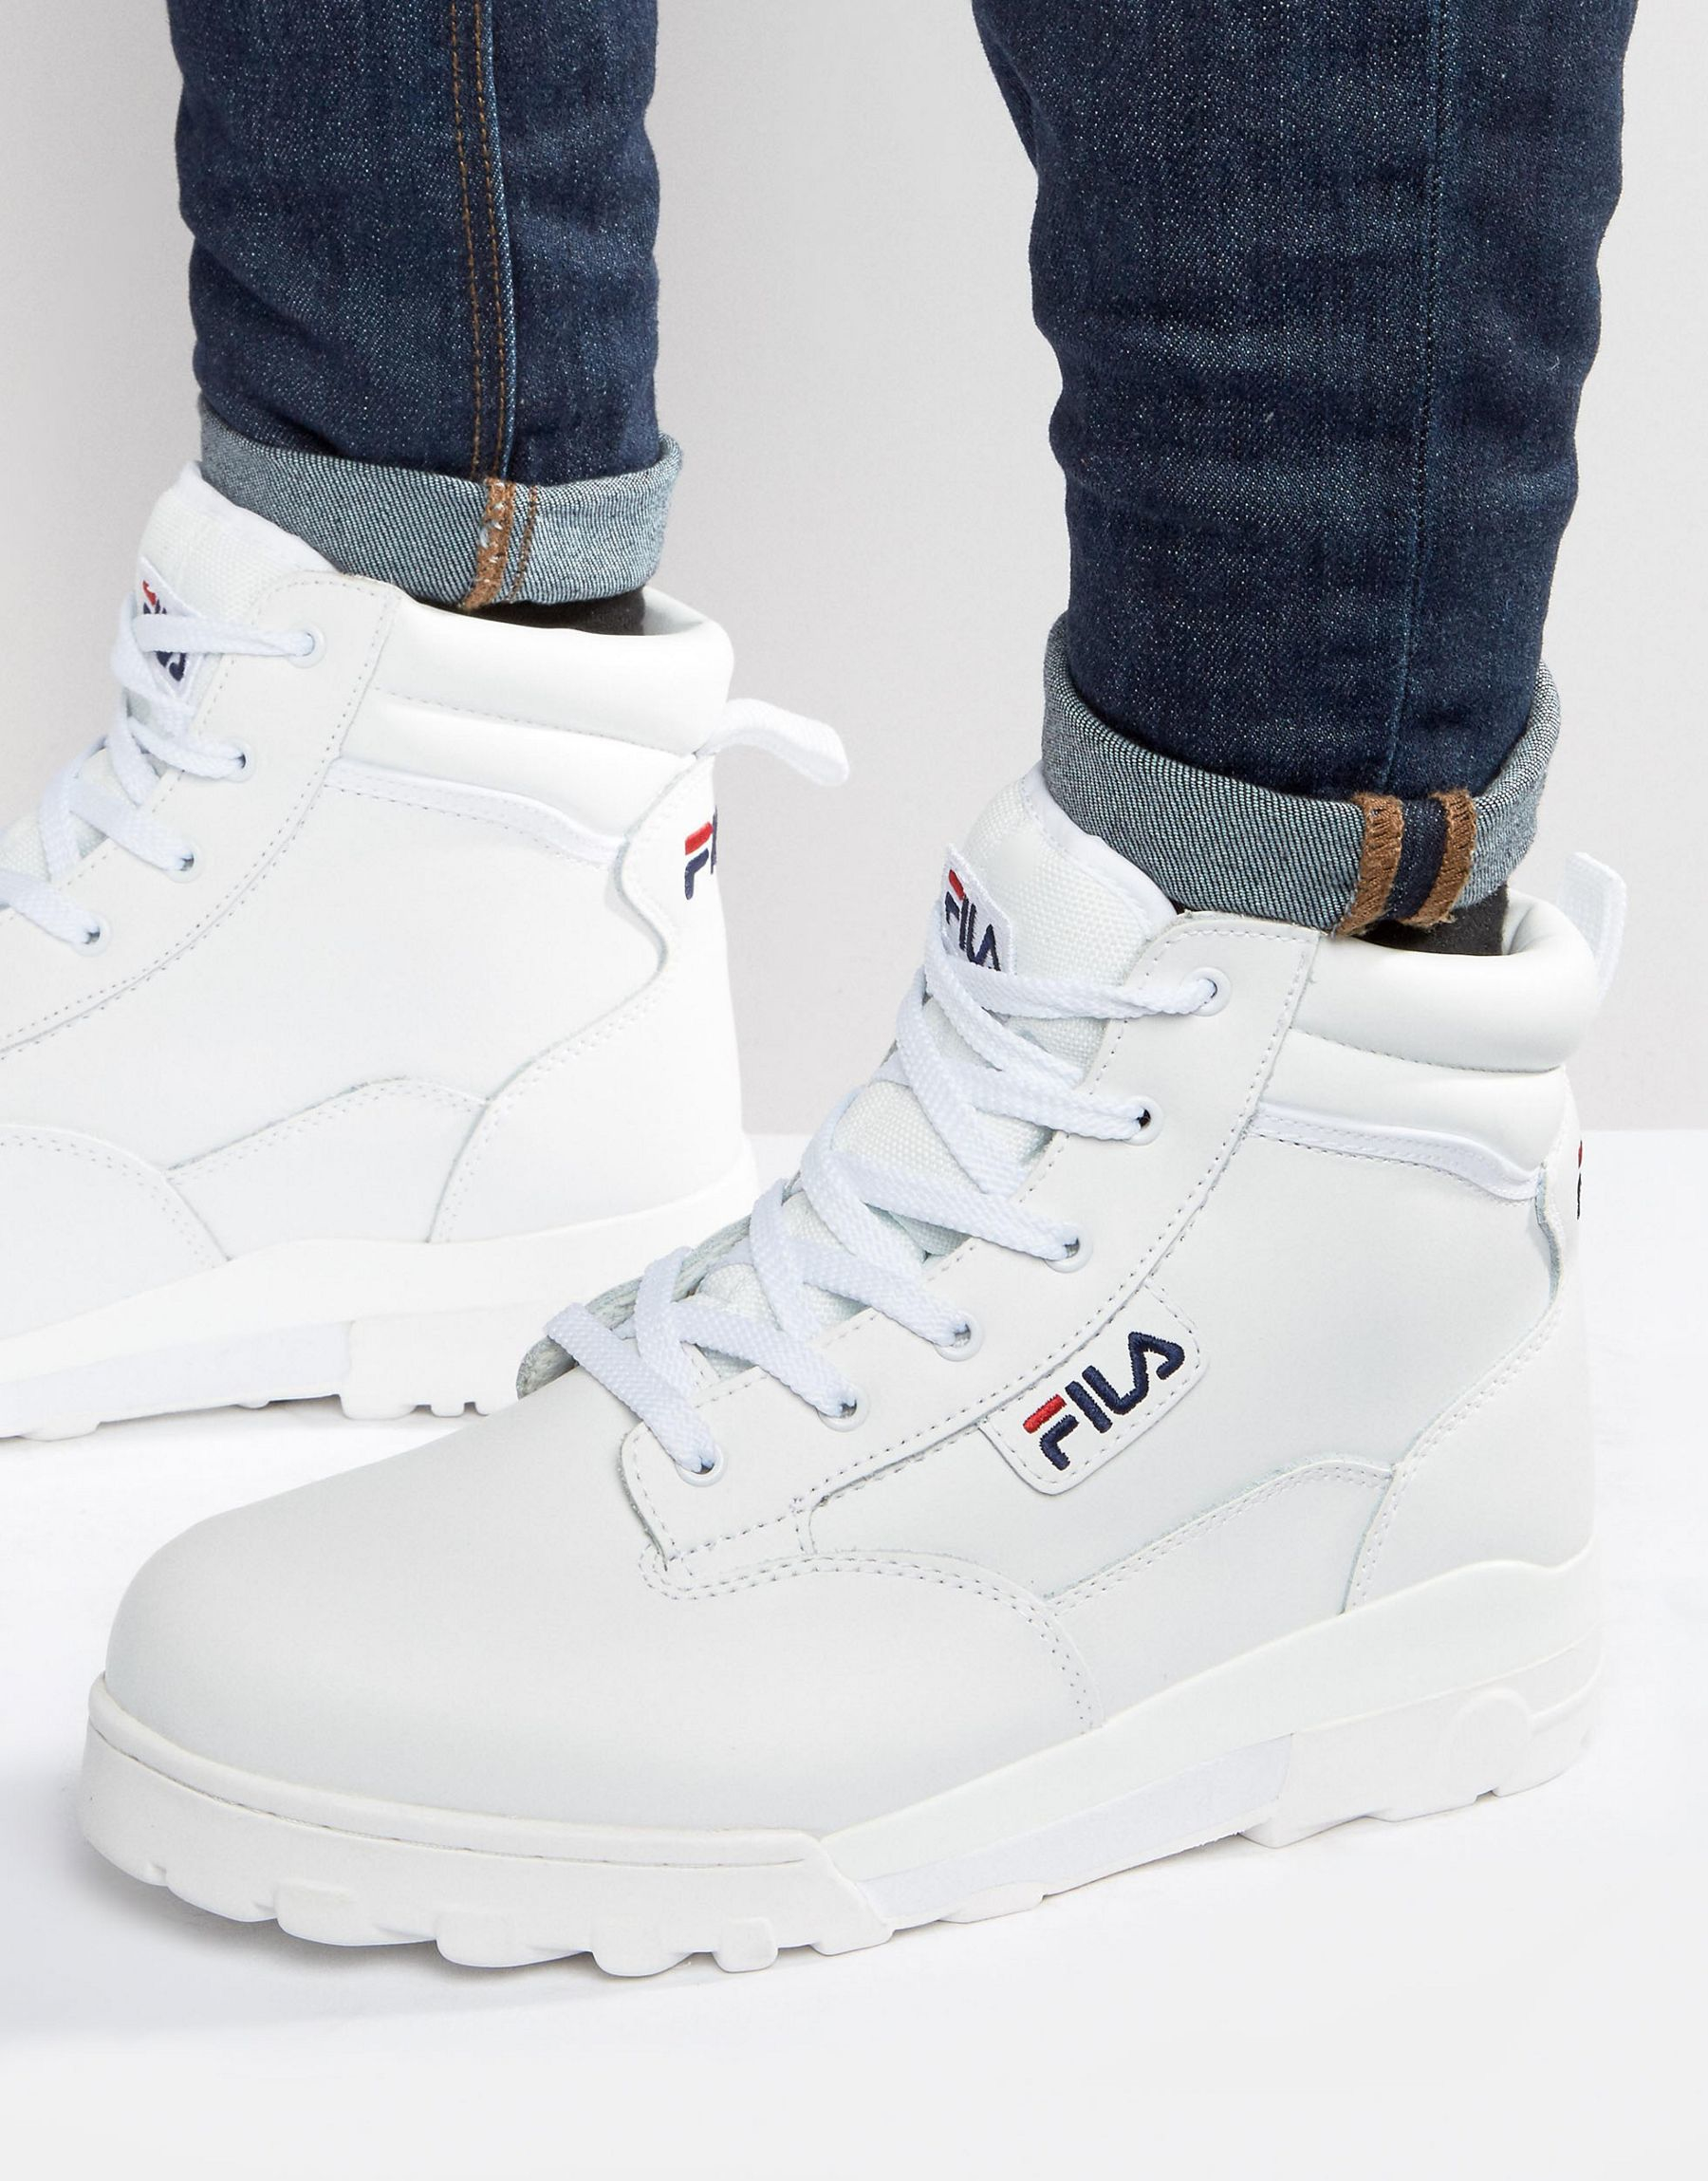 6033a91b996 Fila Grunge Mid Laceup Boots in White for Men - Lyst